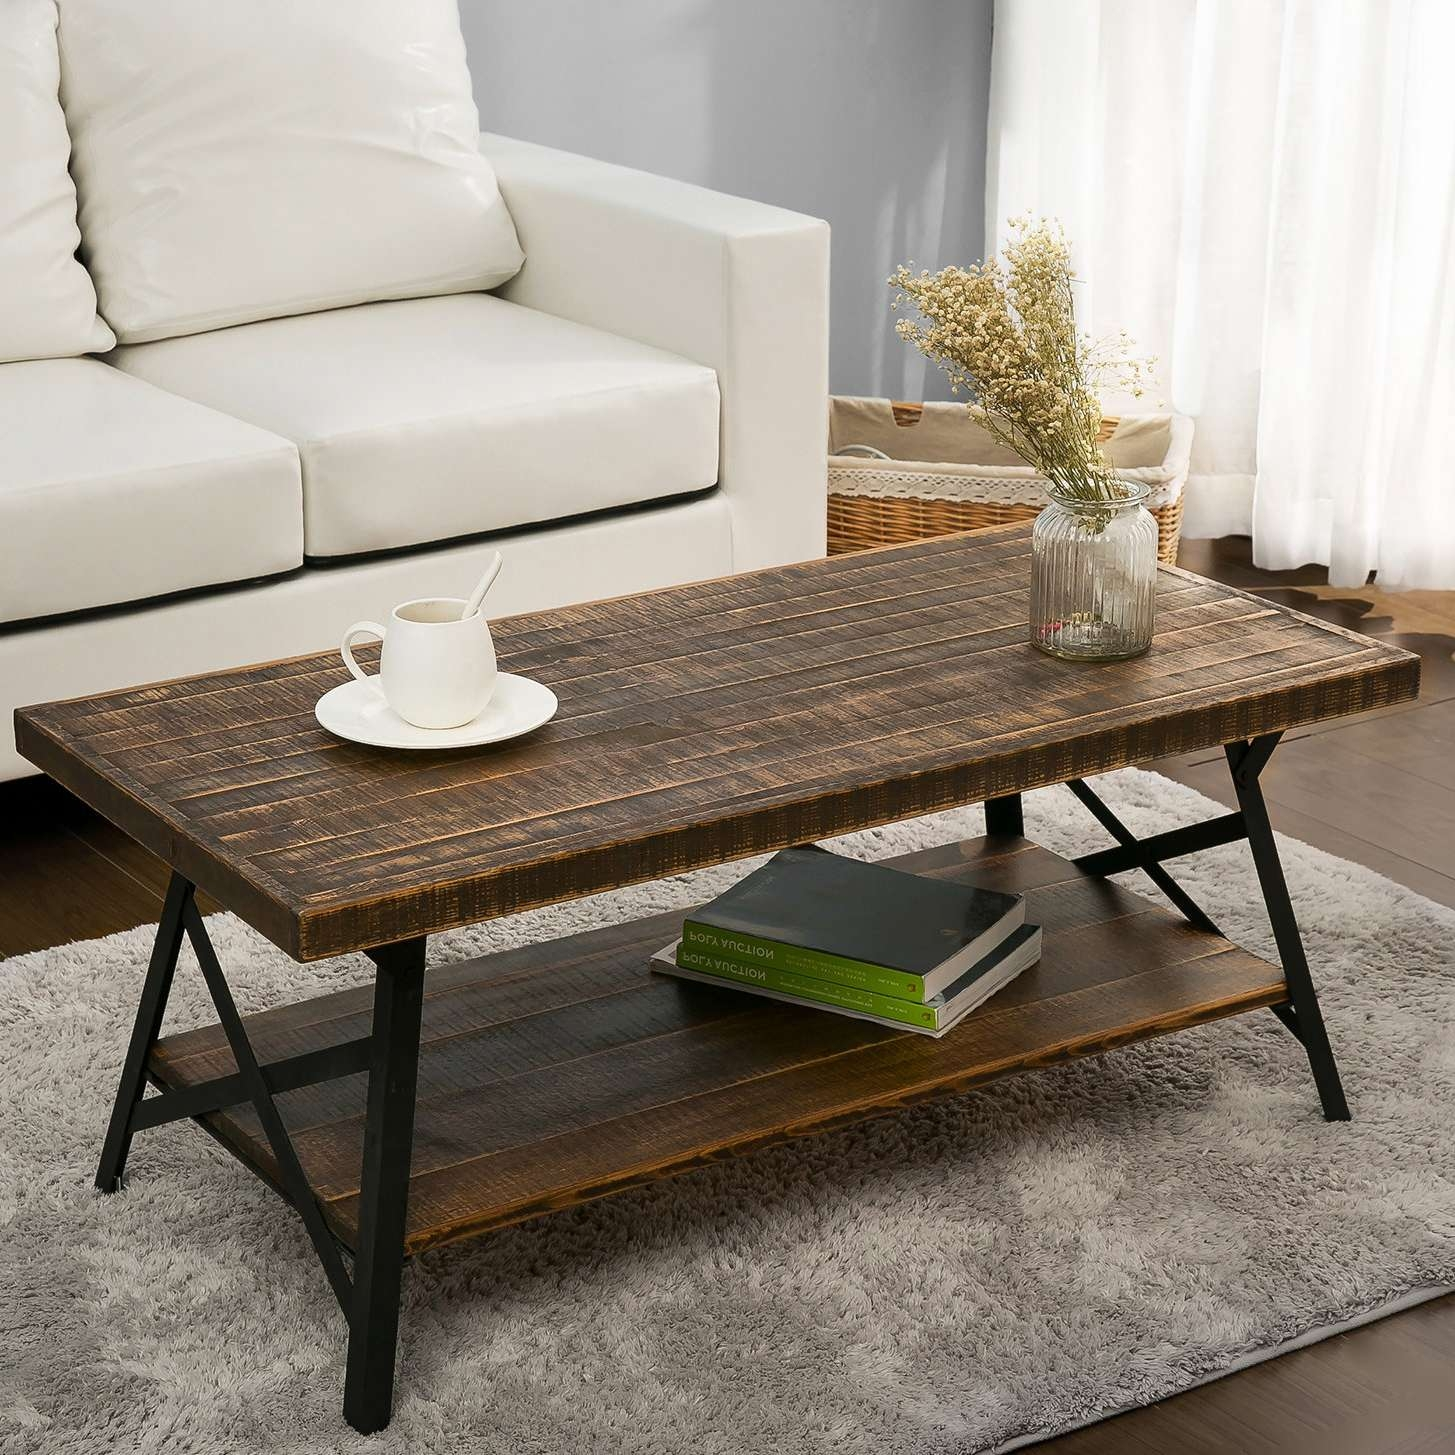 Wayfair Within Latest Coffee Tables With Magazine Rack (View 5 of 20)